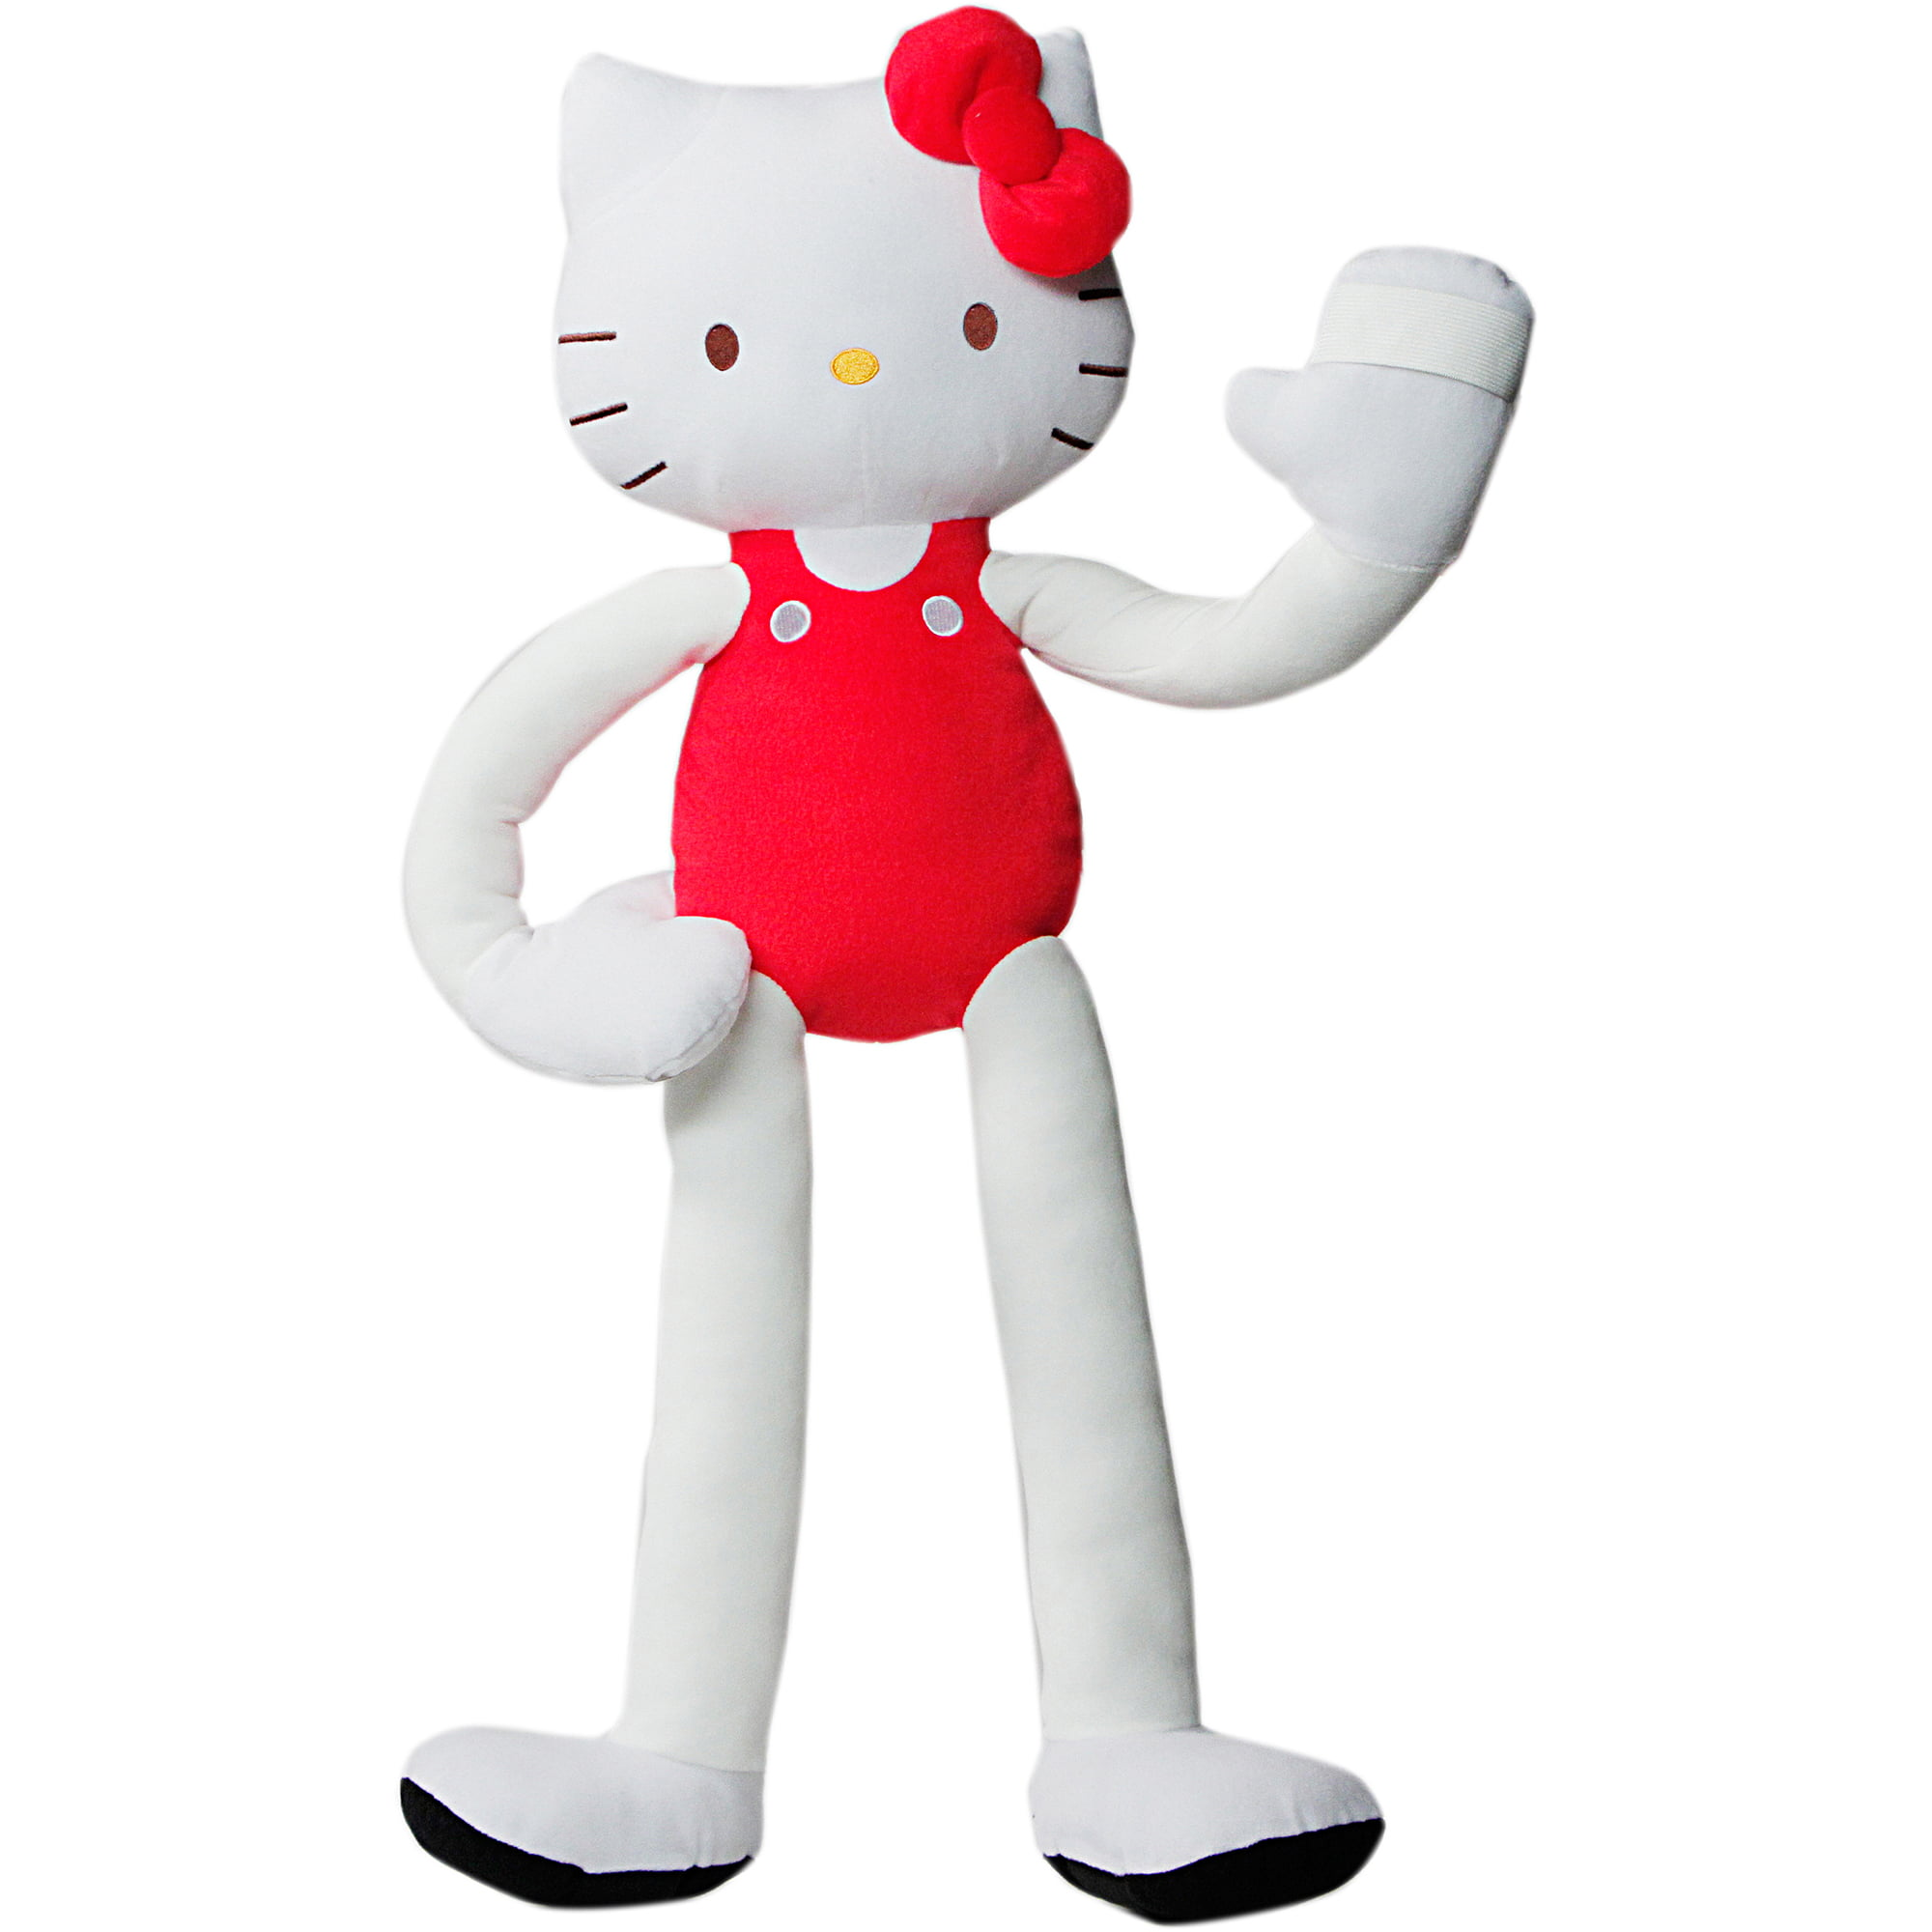 As Seen on TV Stretchkins Plush Hello Kitty, Red by Stretchkins